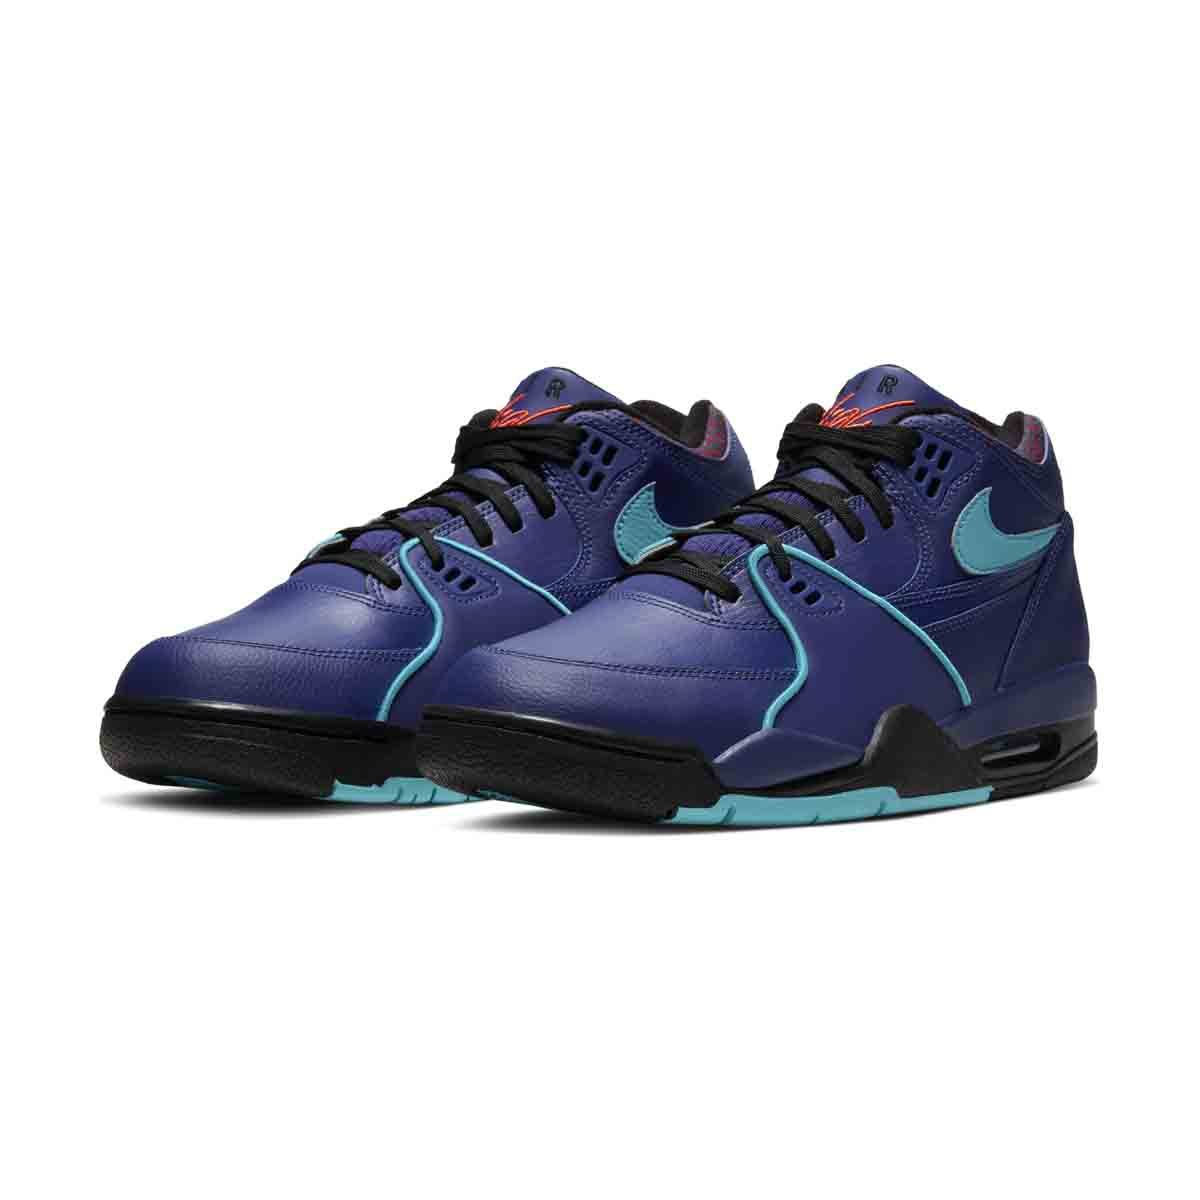 Men's Nike Air Flight 89